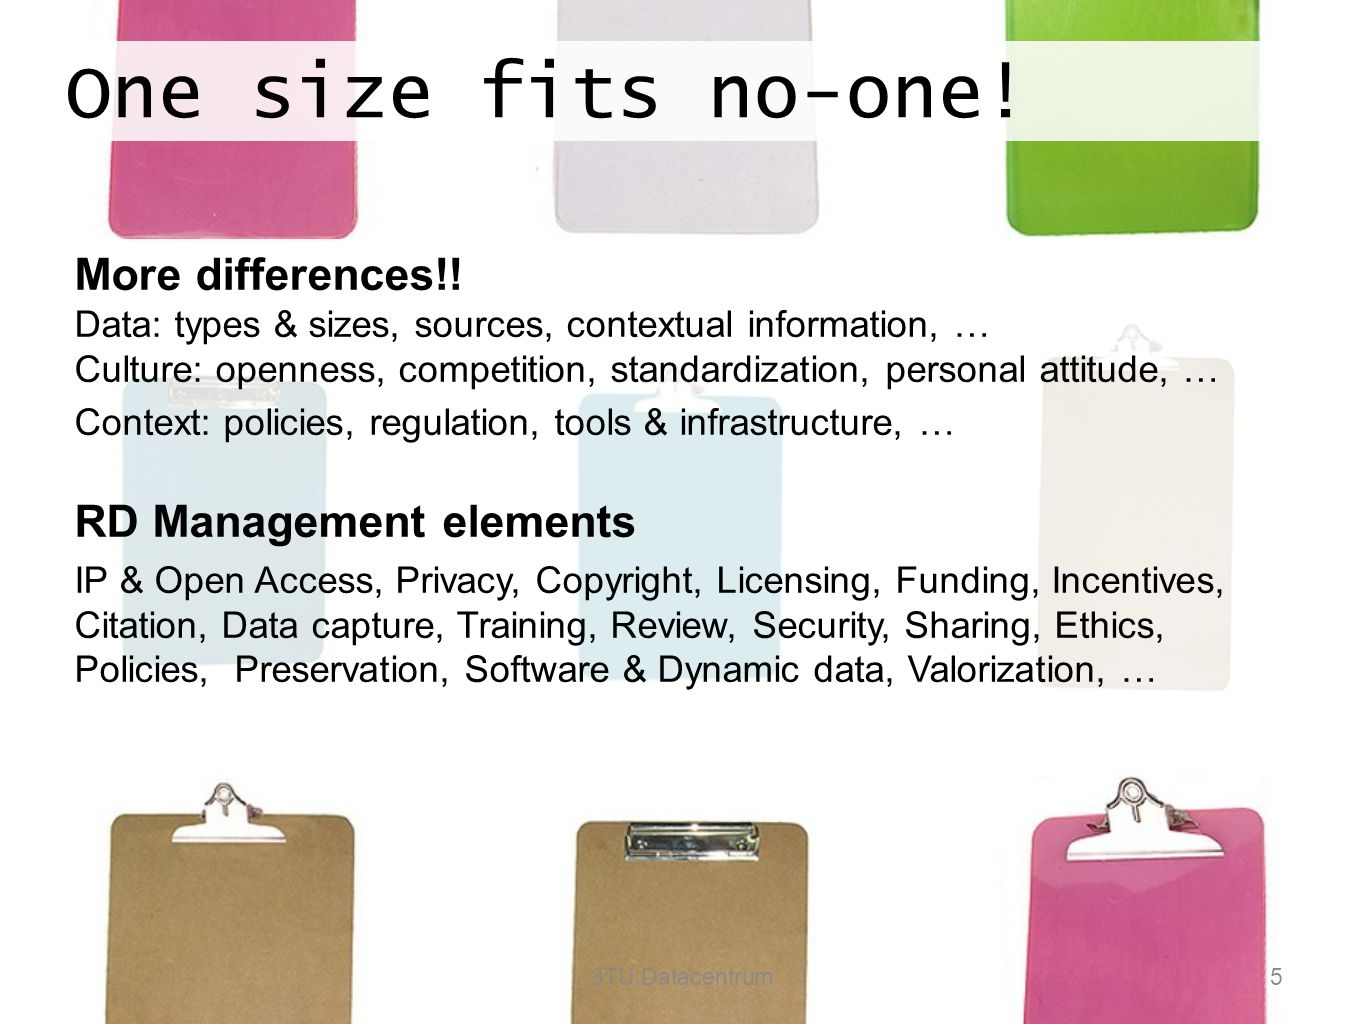 One size fits no-one! 3TU.Datacentrum5 More differences!! Data: types & sizes, sources, contextual information, … Culture: openness, competition, stan